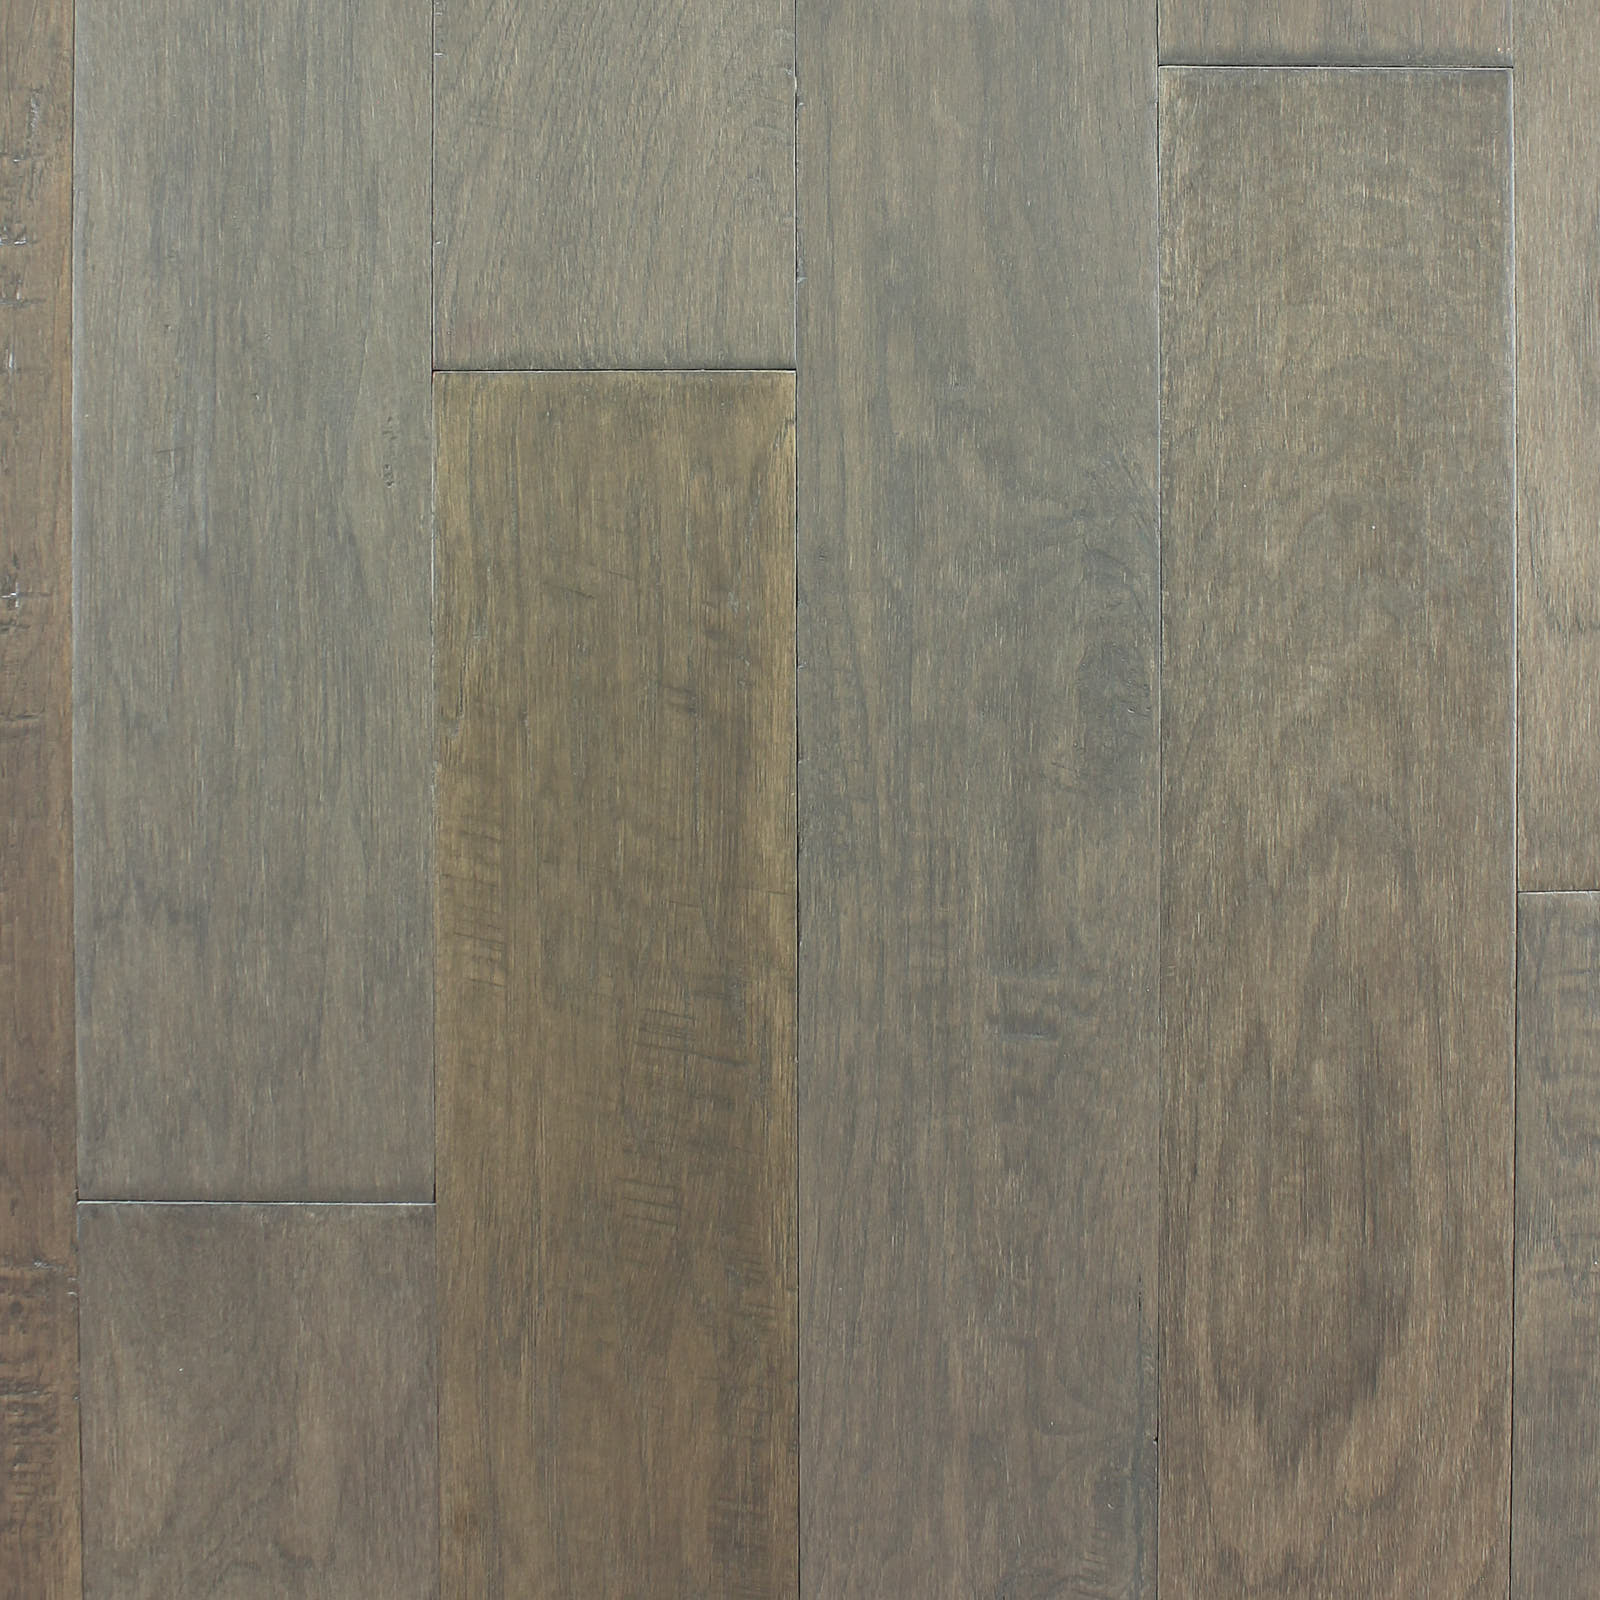 Duvall Collection Weathered Stone Engineered Hardwood Flooring